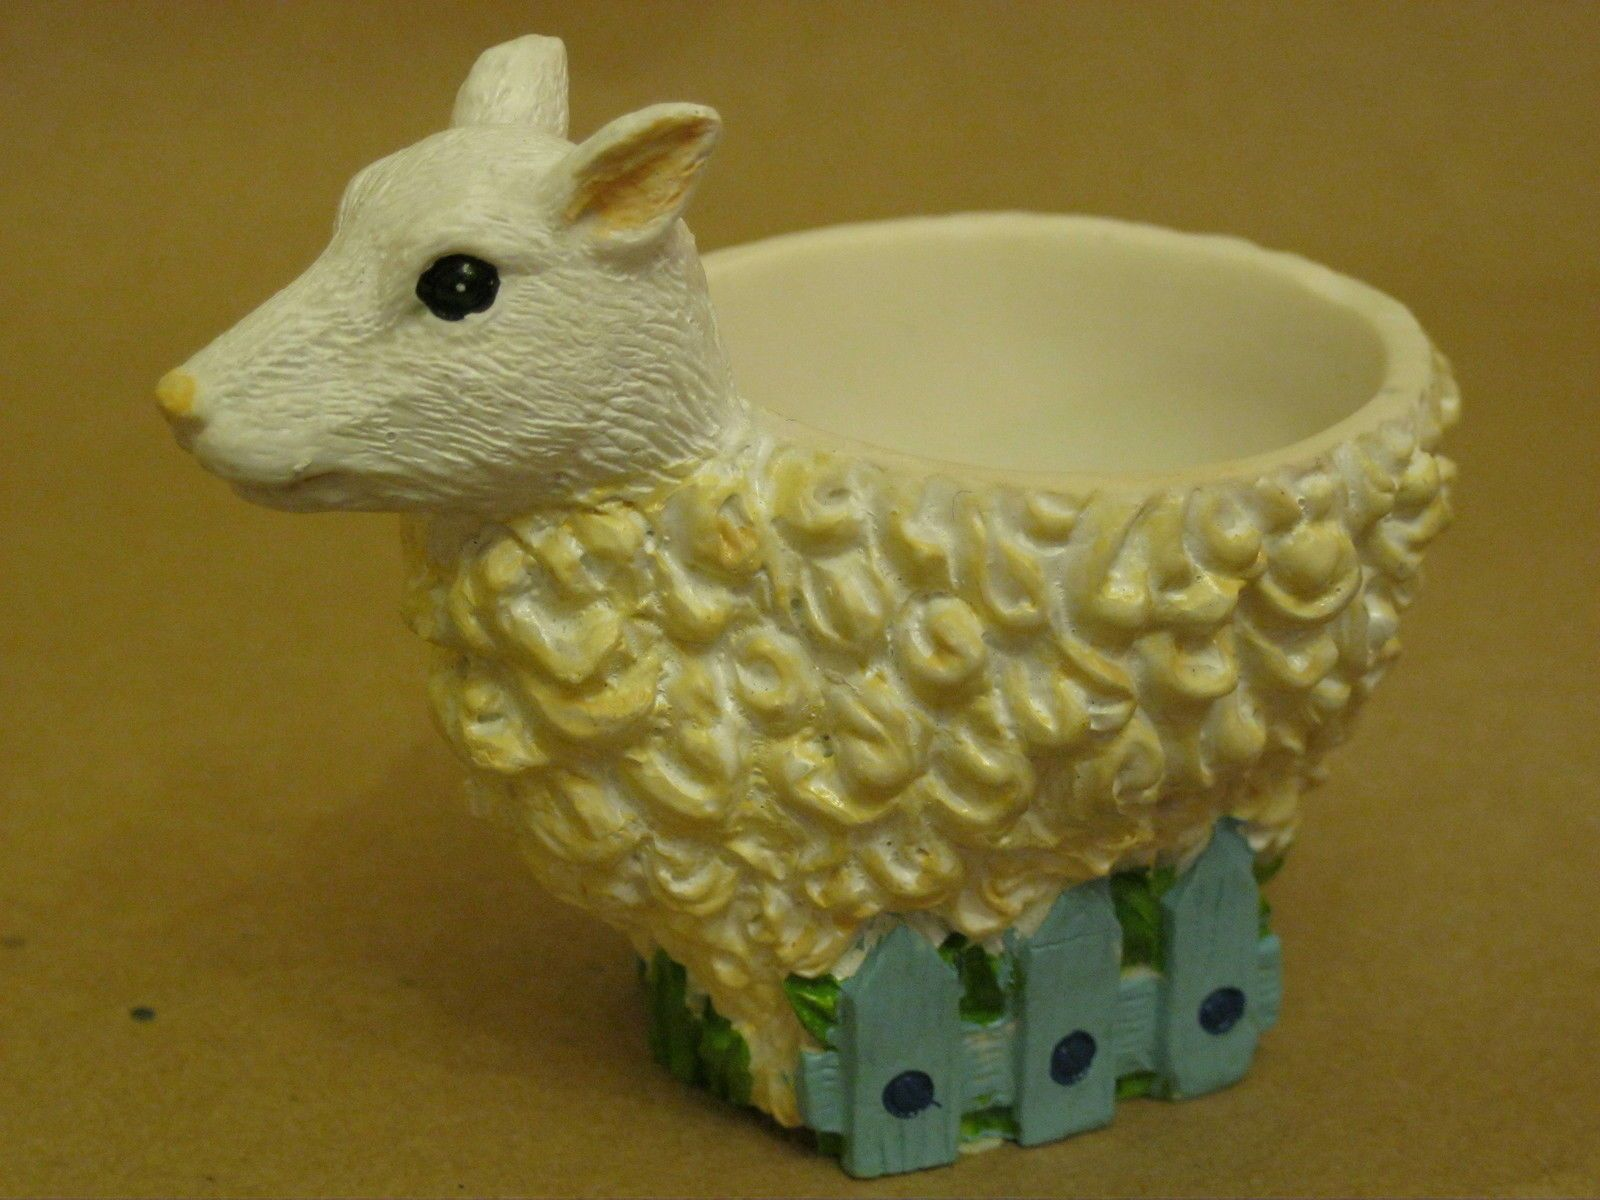 Lovely sheep collectable egg cup | Pinterest | Egg cups, Egg and Cups